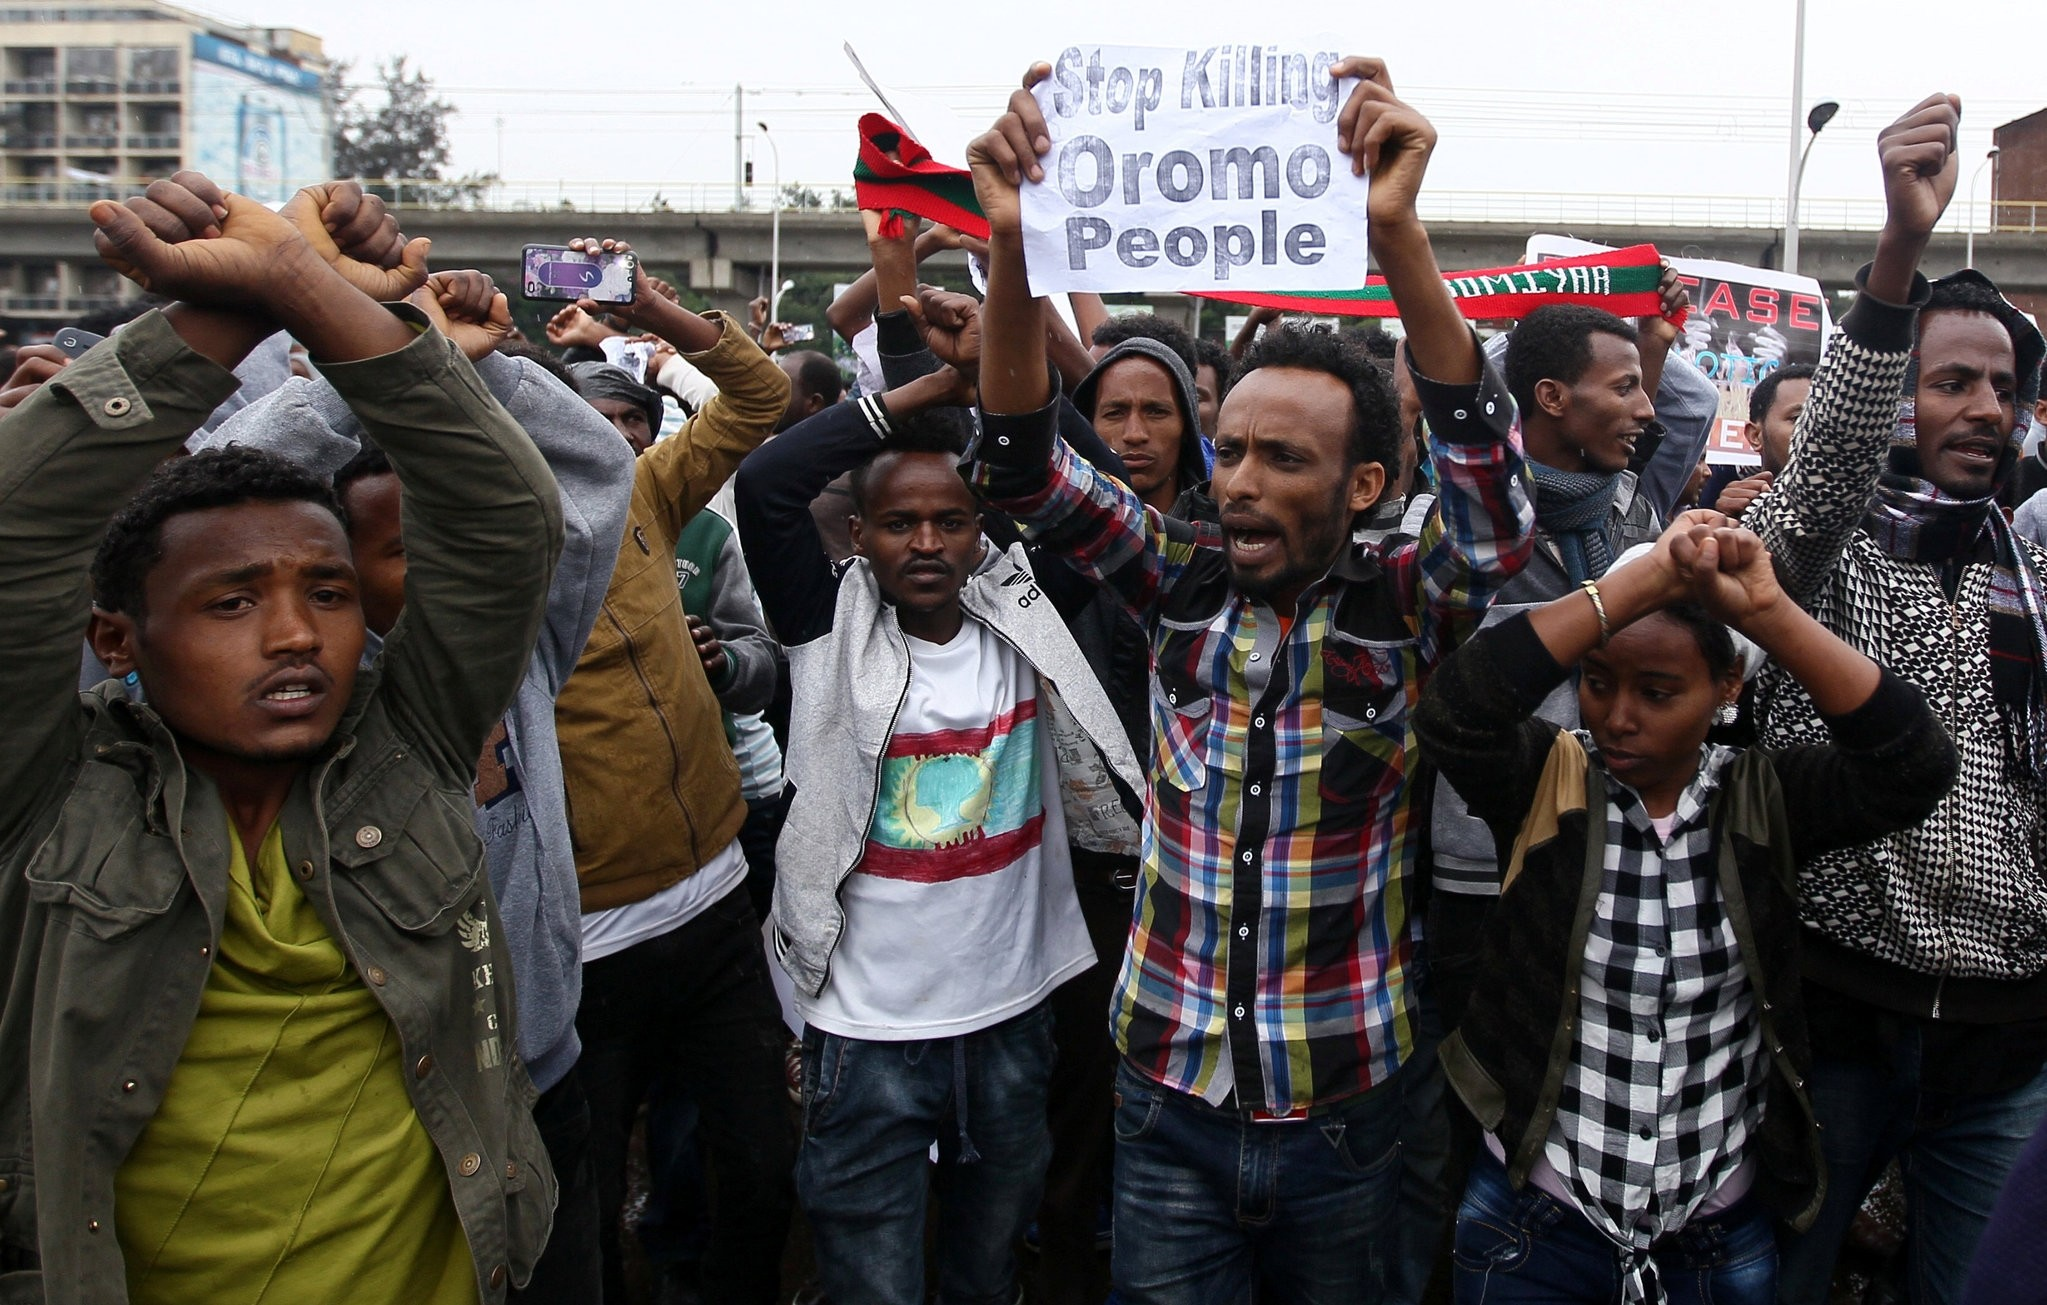 Protesters chant slogans during a demonstration over what they say is unfair distribution of wealth in the country at Meskel Square in Ethiopia's capital Addis Ababa, August 6, 2016. (REUTERS Photo)